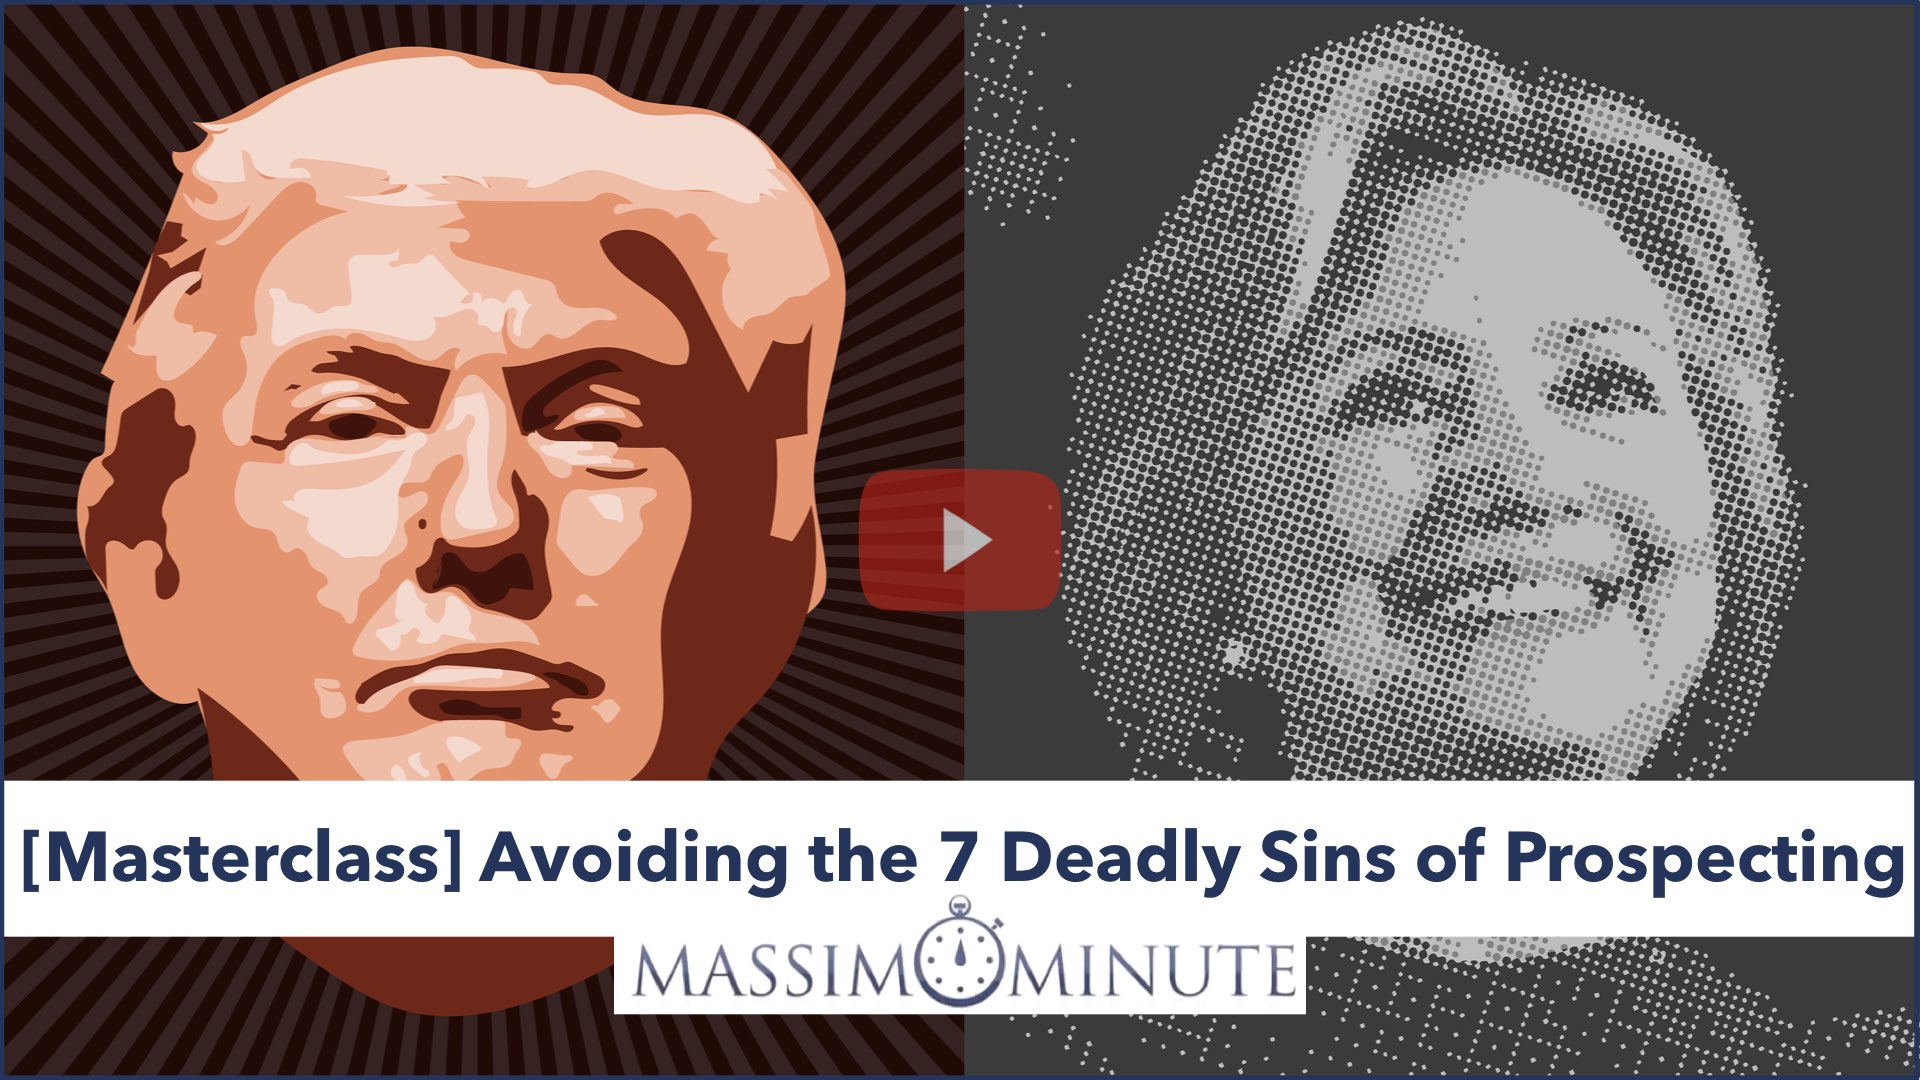 Masterclass Avoiding The 7 Deadly Sins Of Prospecting In Cre